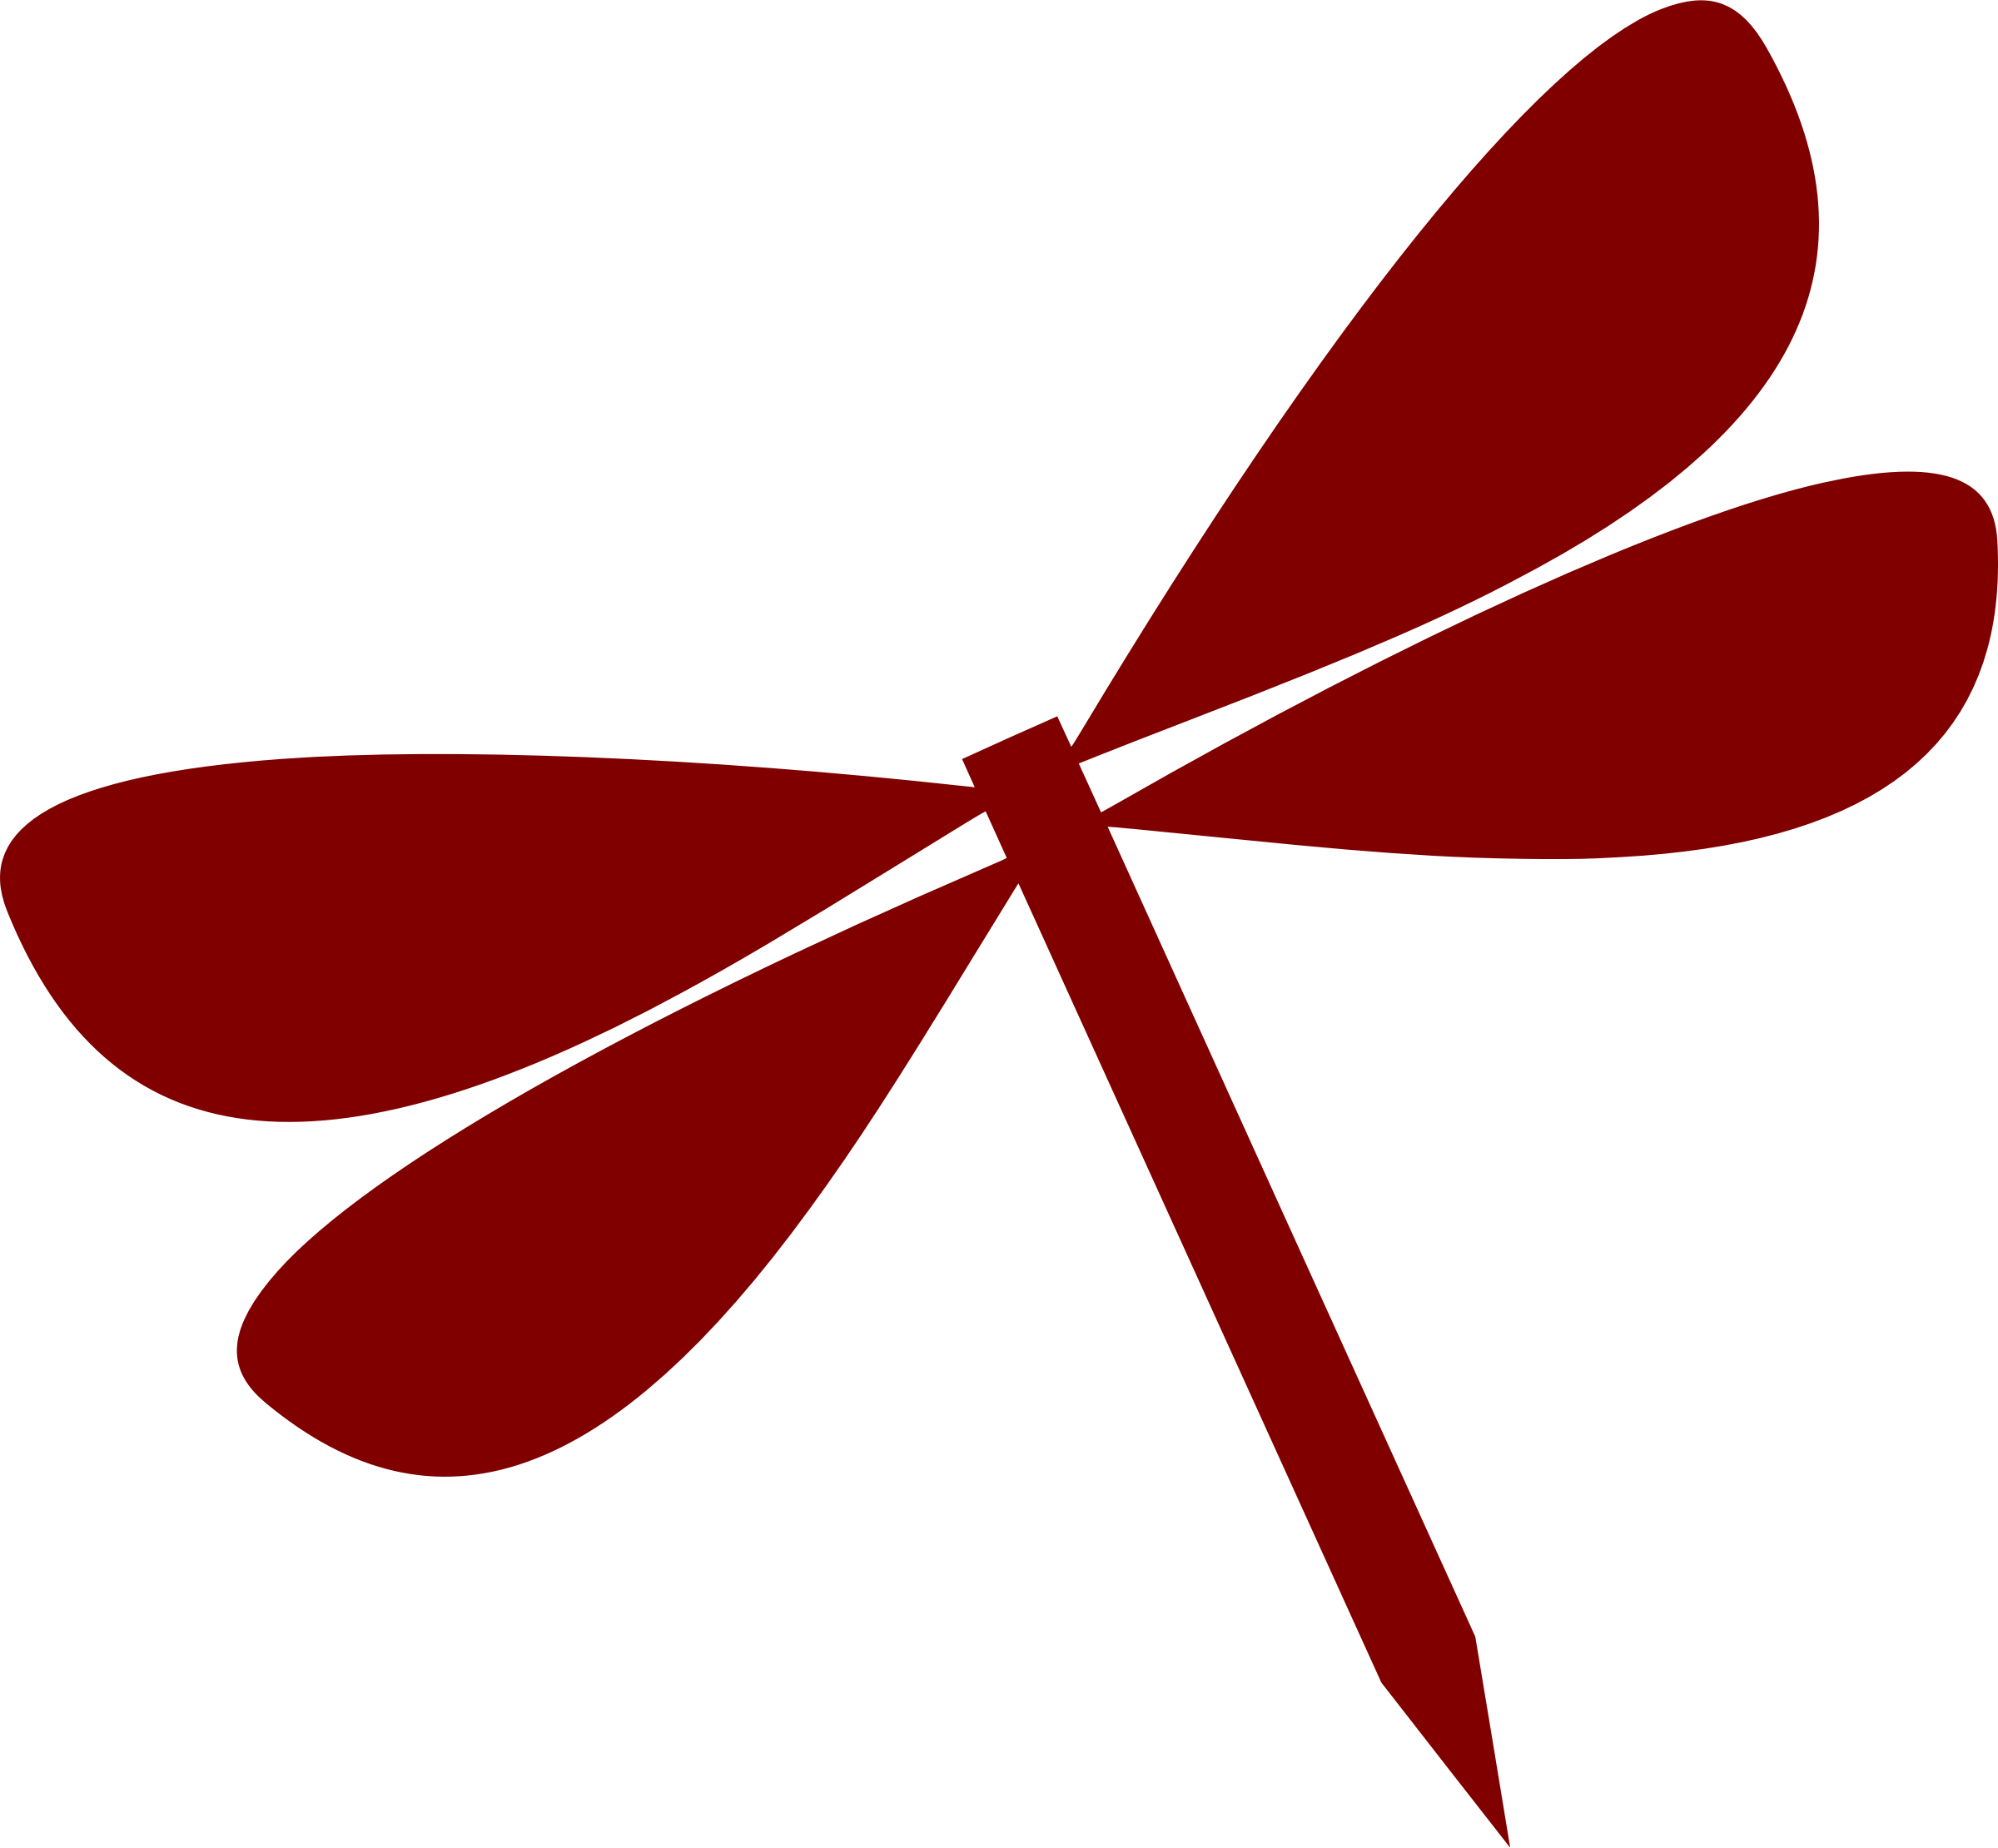 Dragonfly vectorized by Firkin